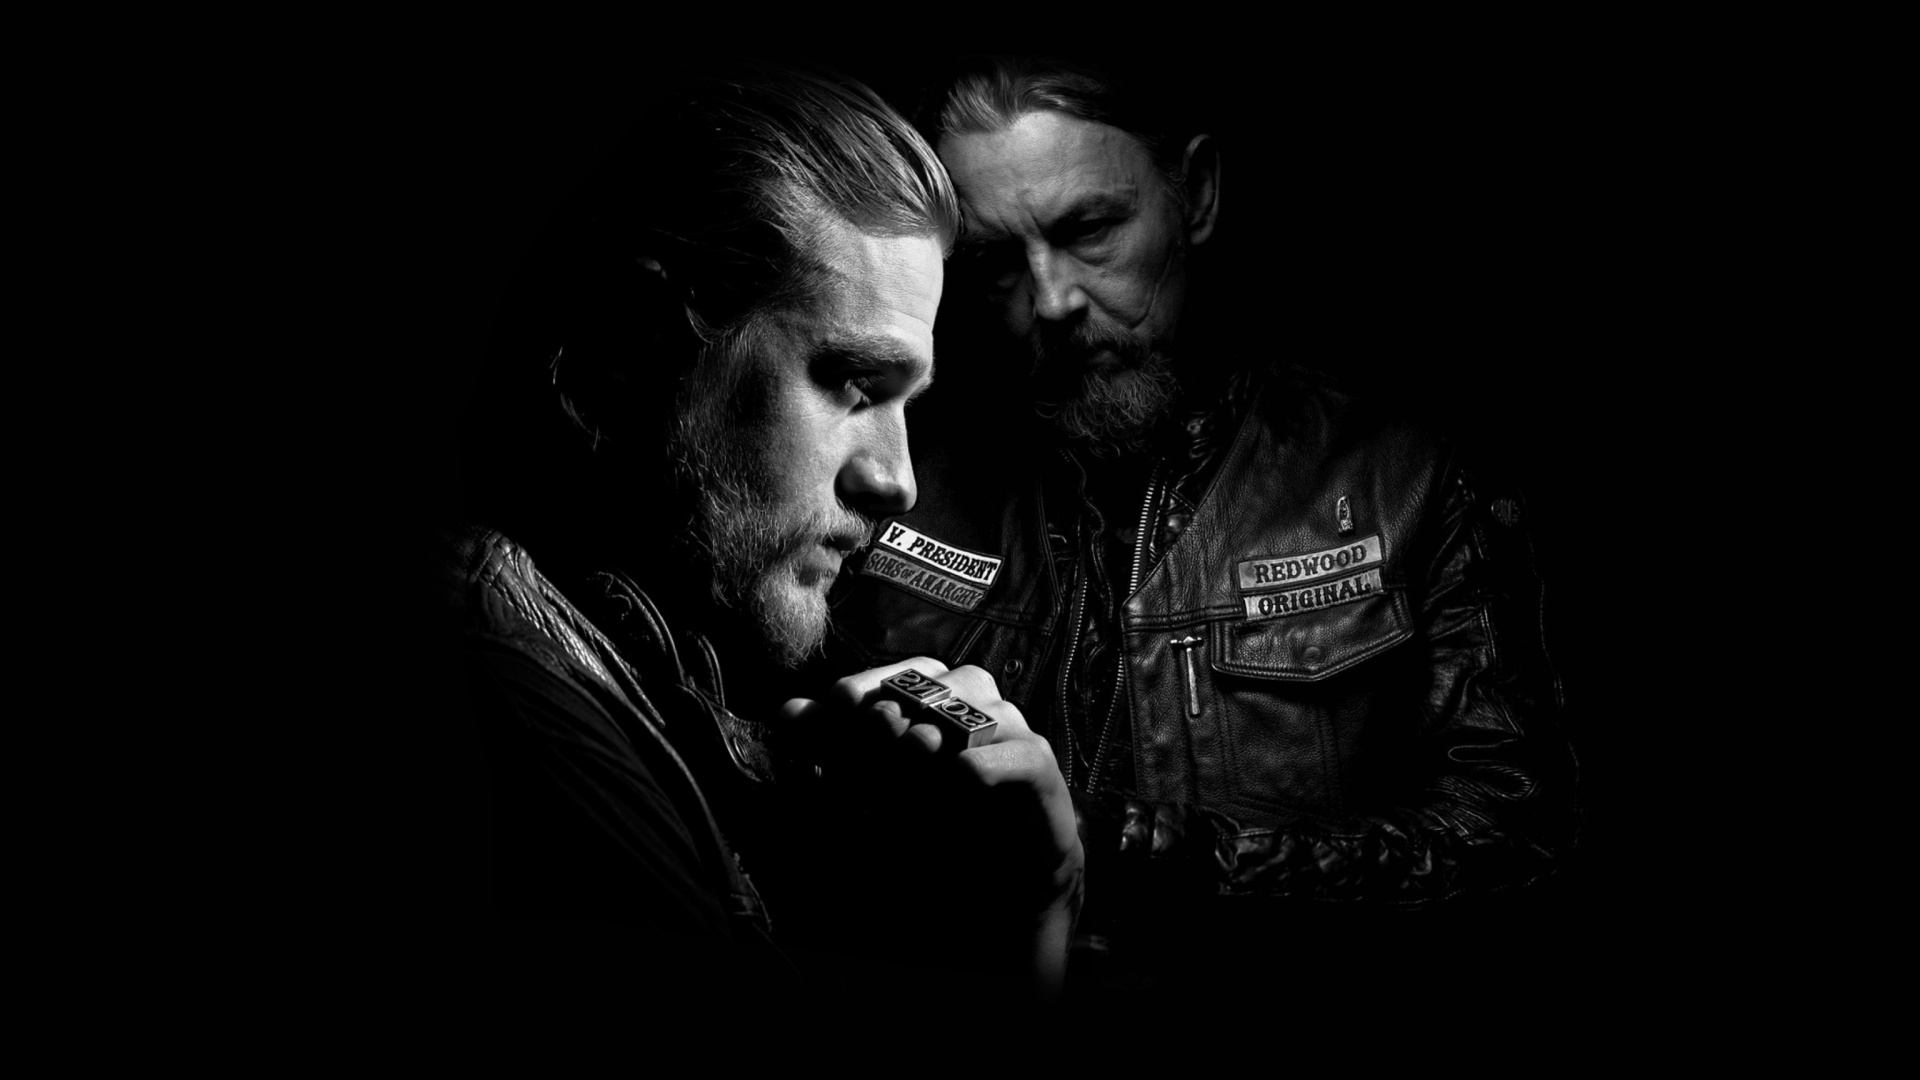 Sons of anarchy wallpaper for desktop 1920x1080 full hd